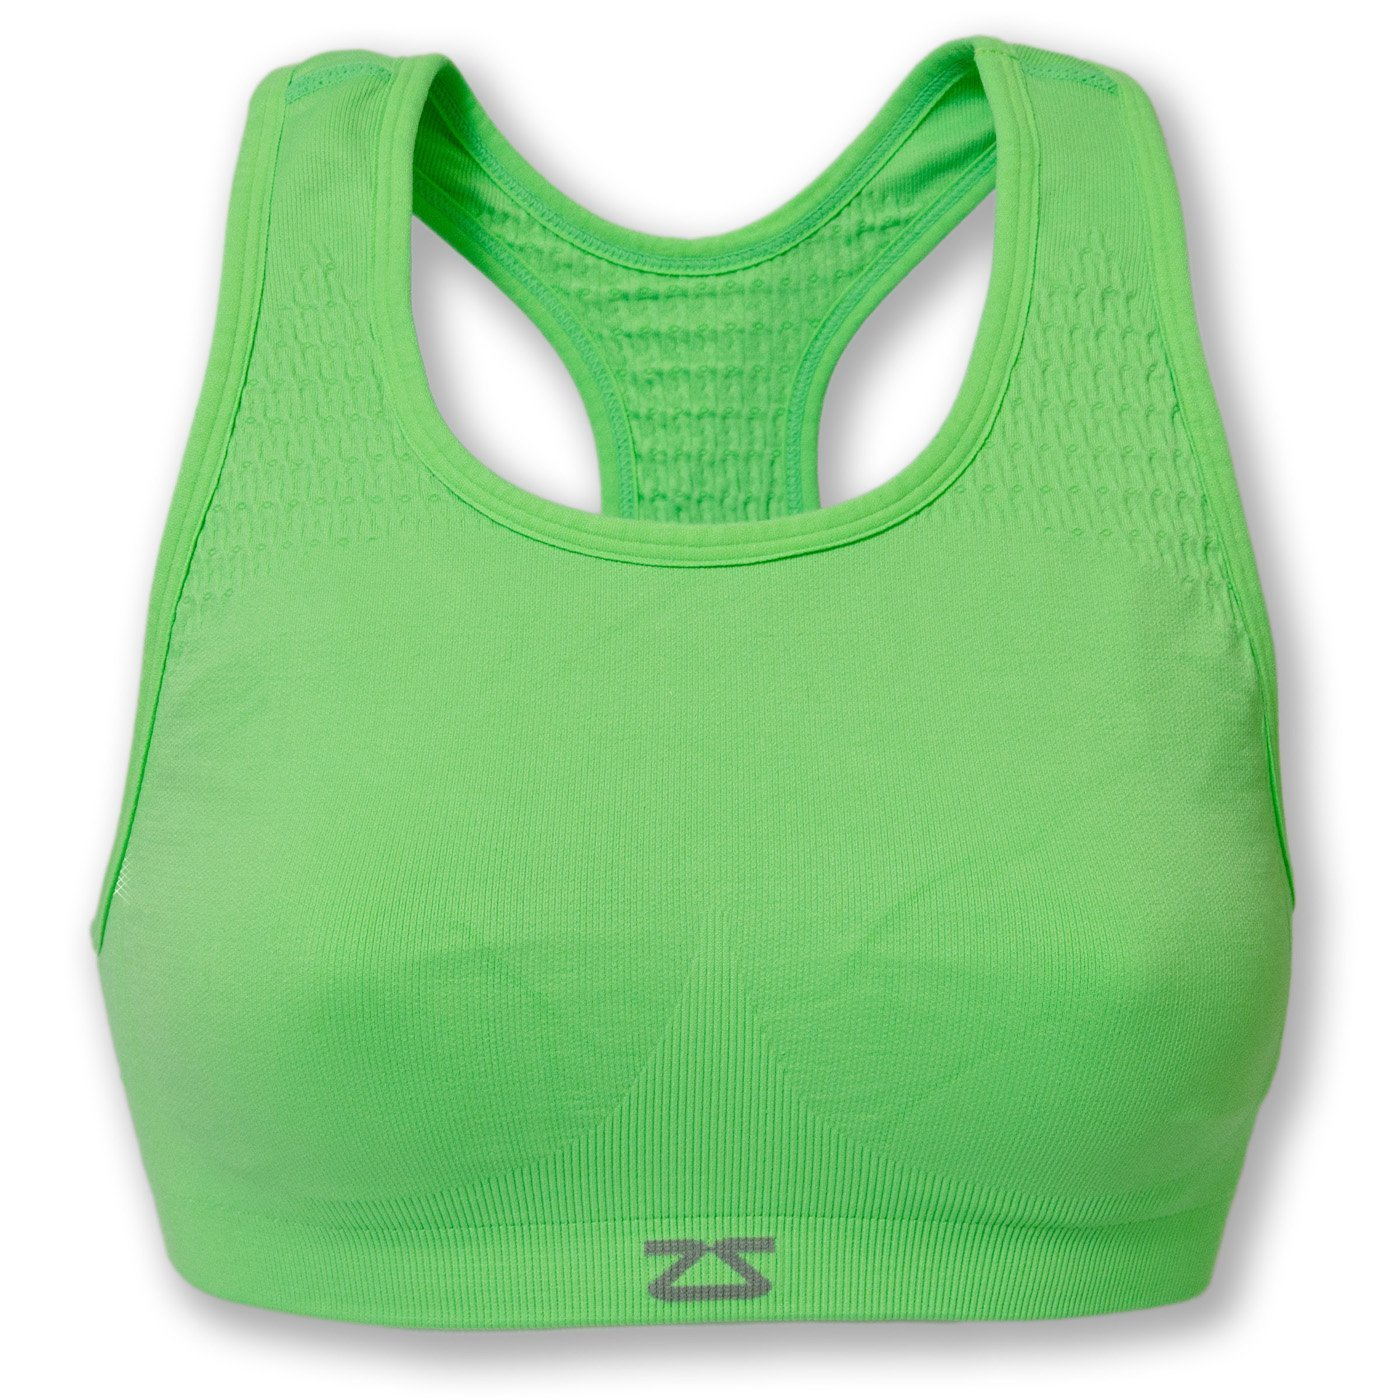 8a624761b30ca Get Quotations · Zensah Seamless Sports Bra - Best Sports Bra For Running